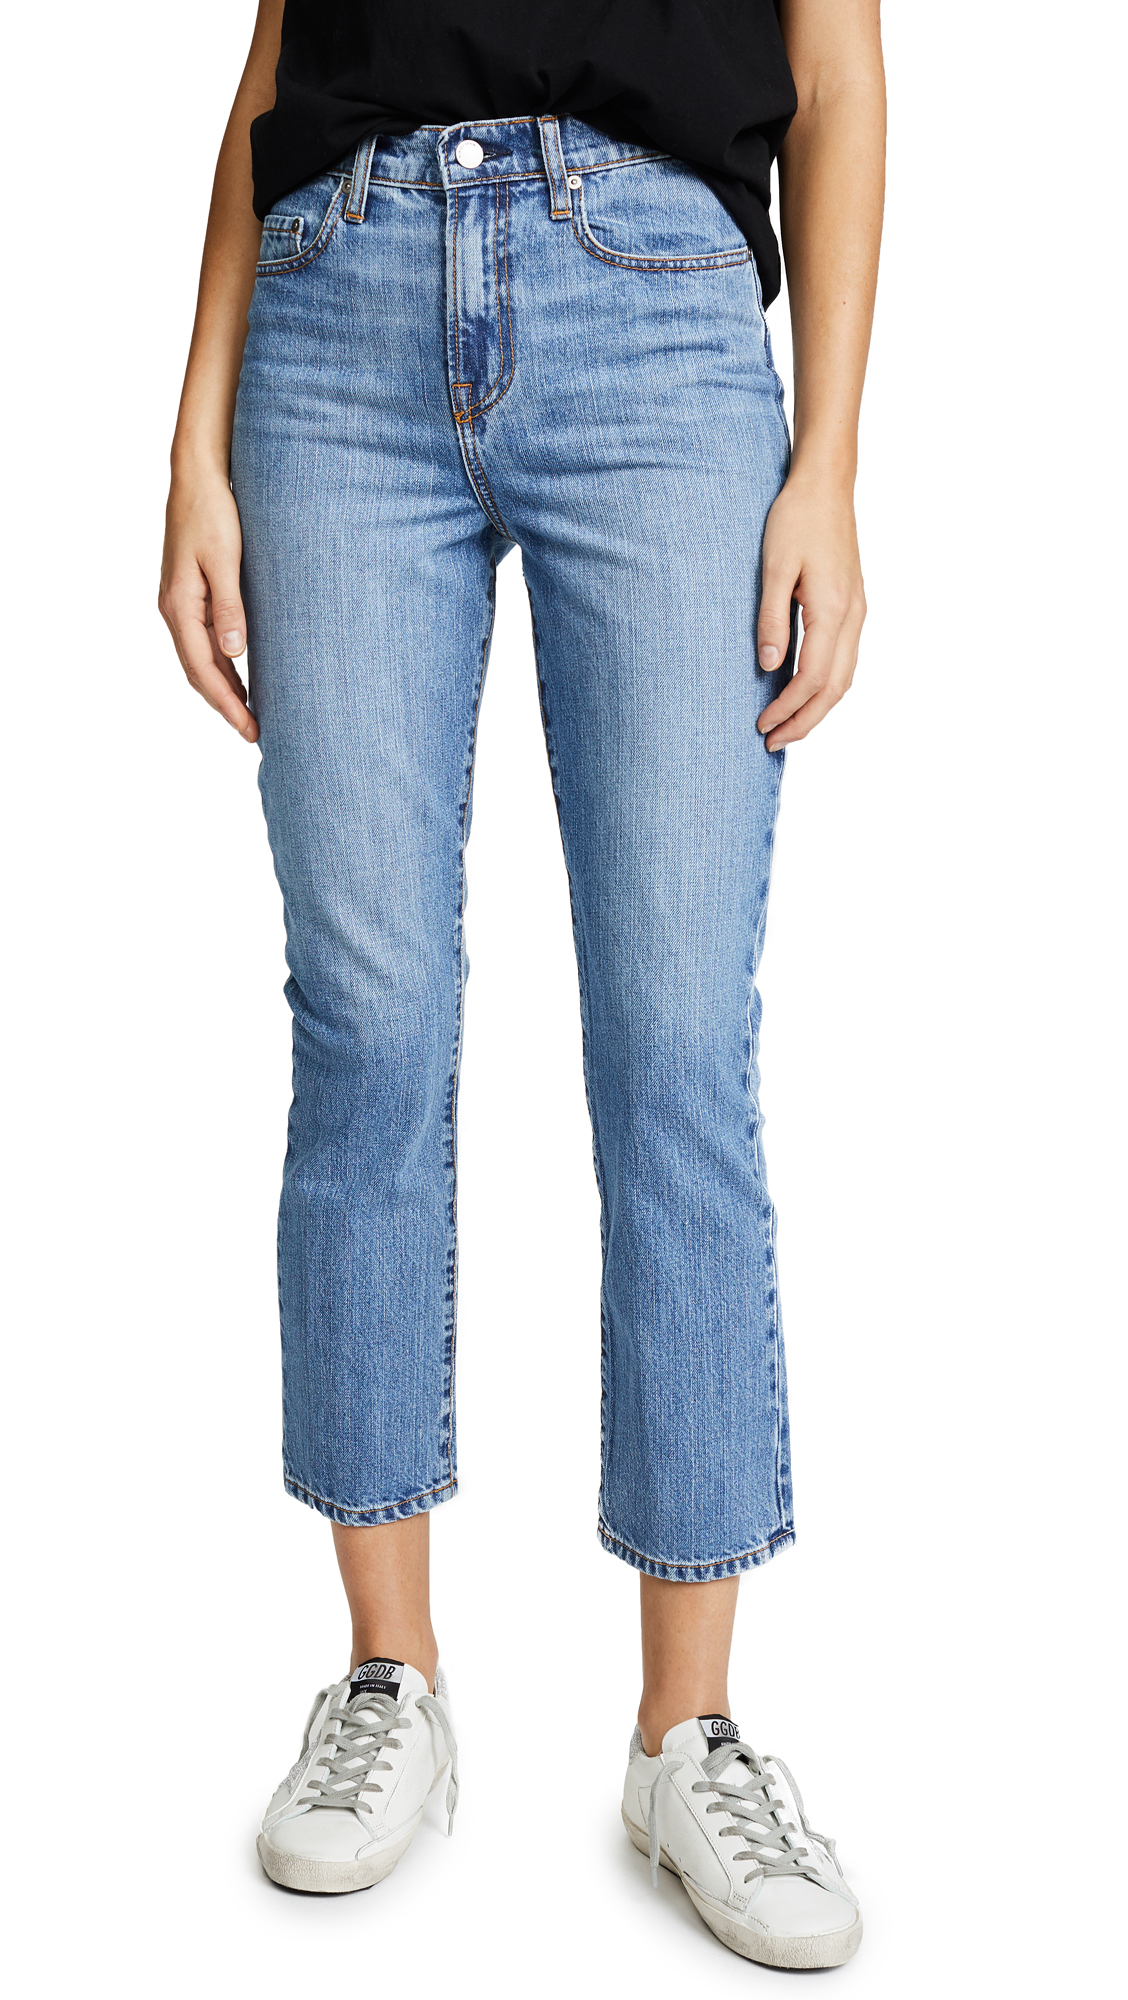 The Charlotte Tailored Straight Leg Jeans